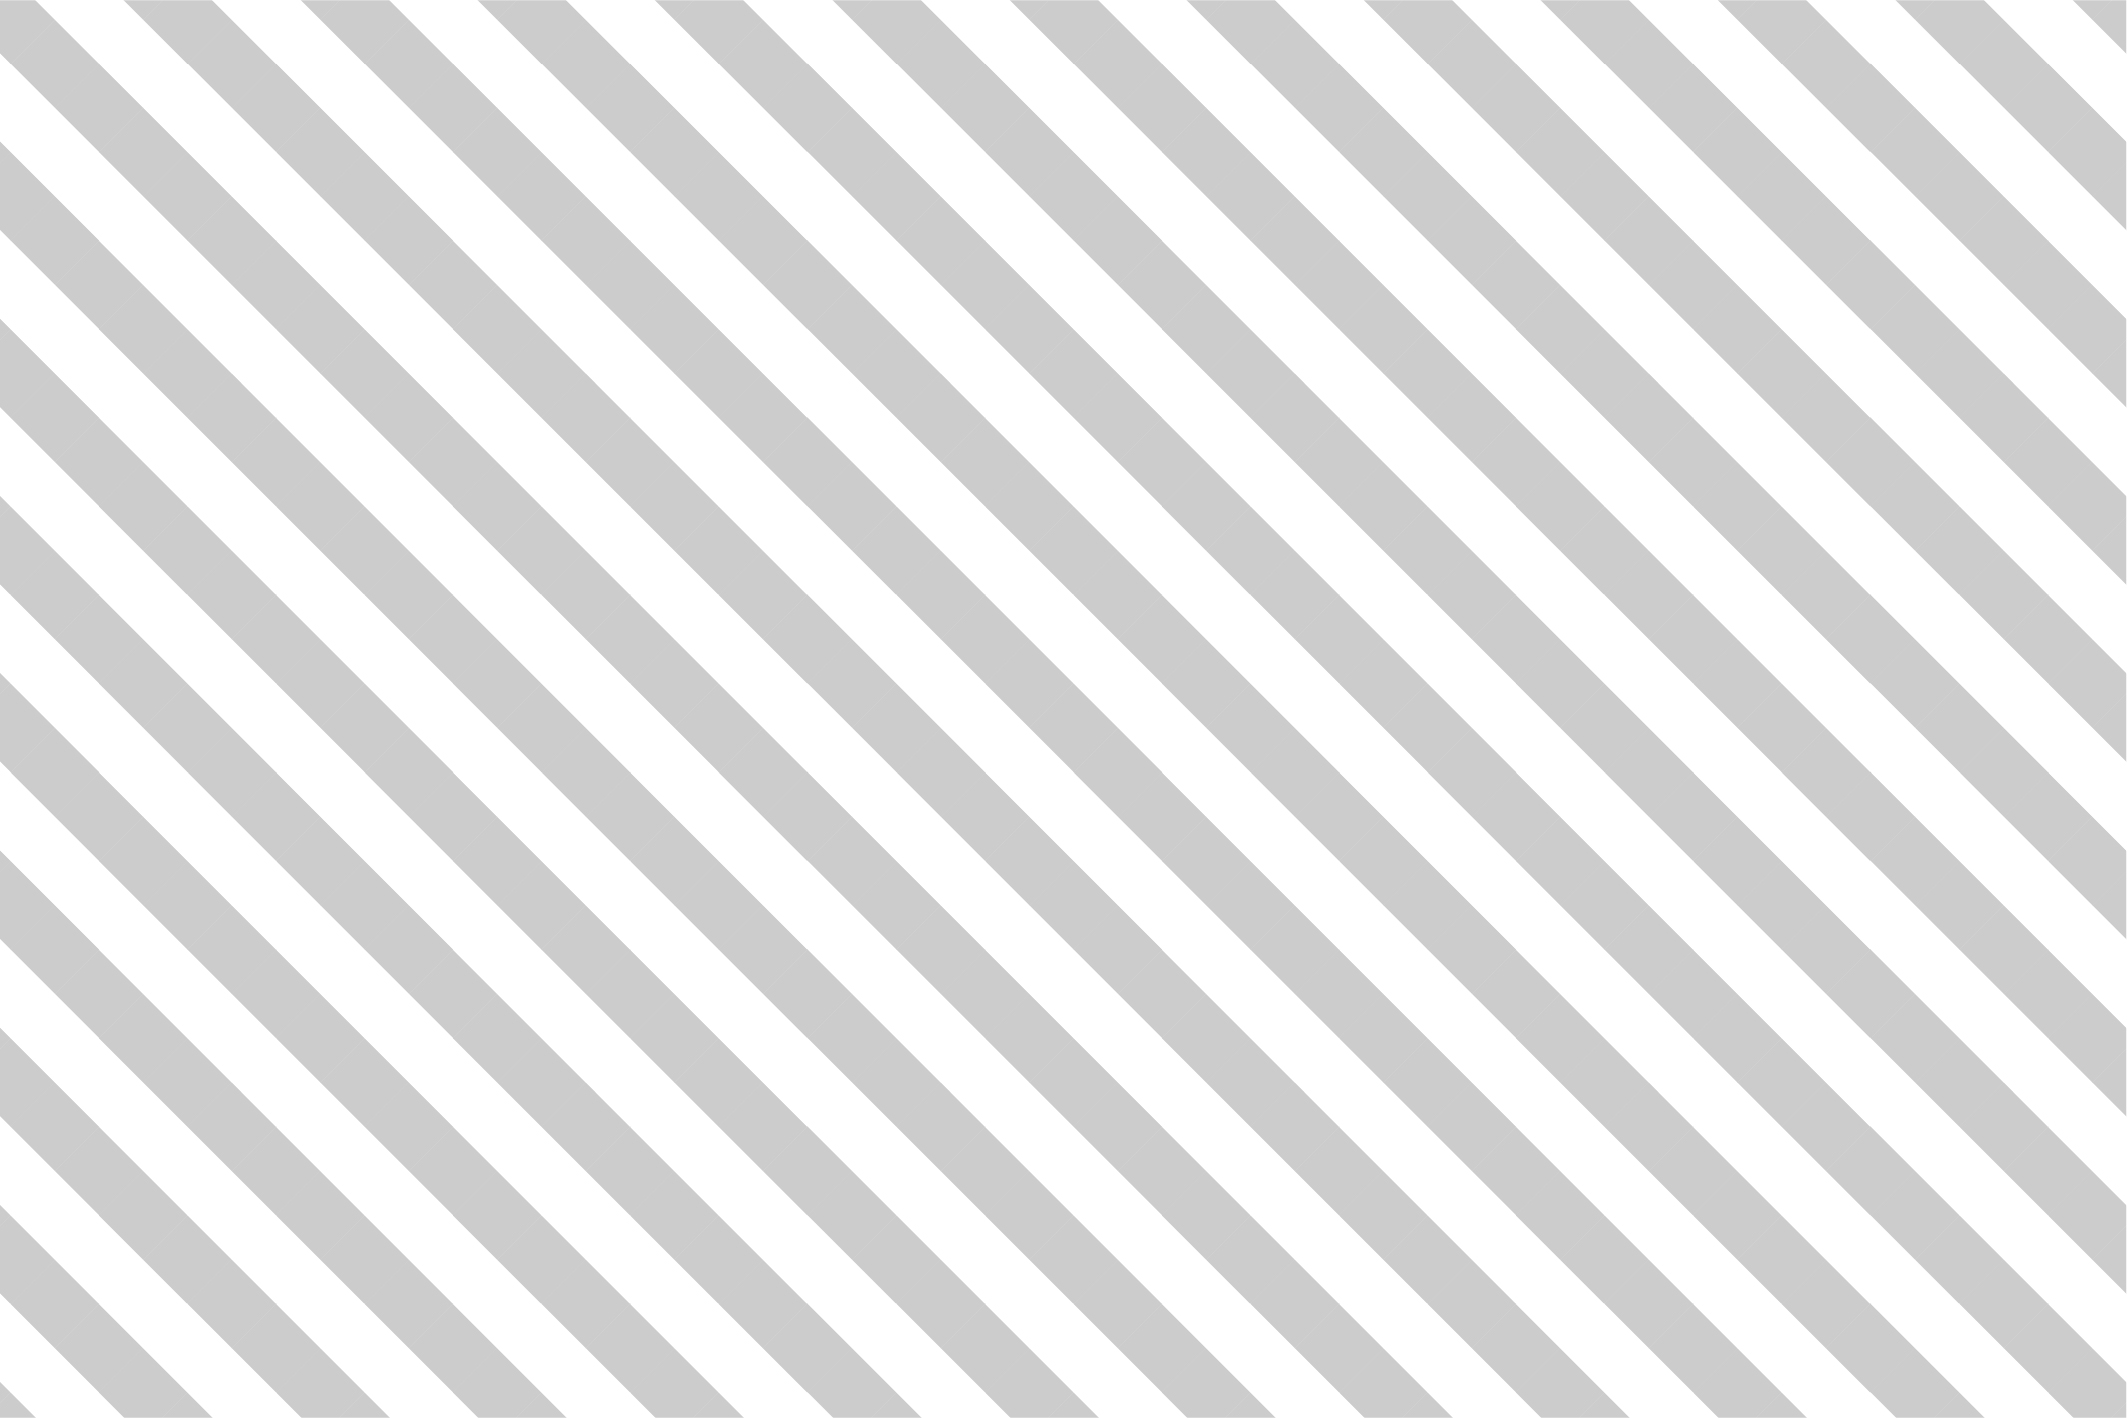 Striped seamless patterns. example image 2